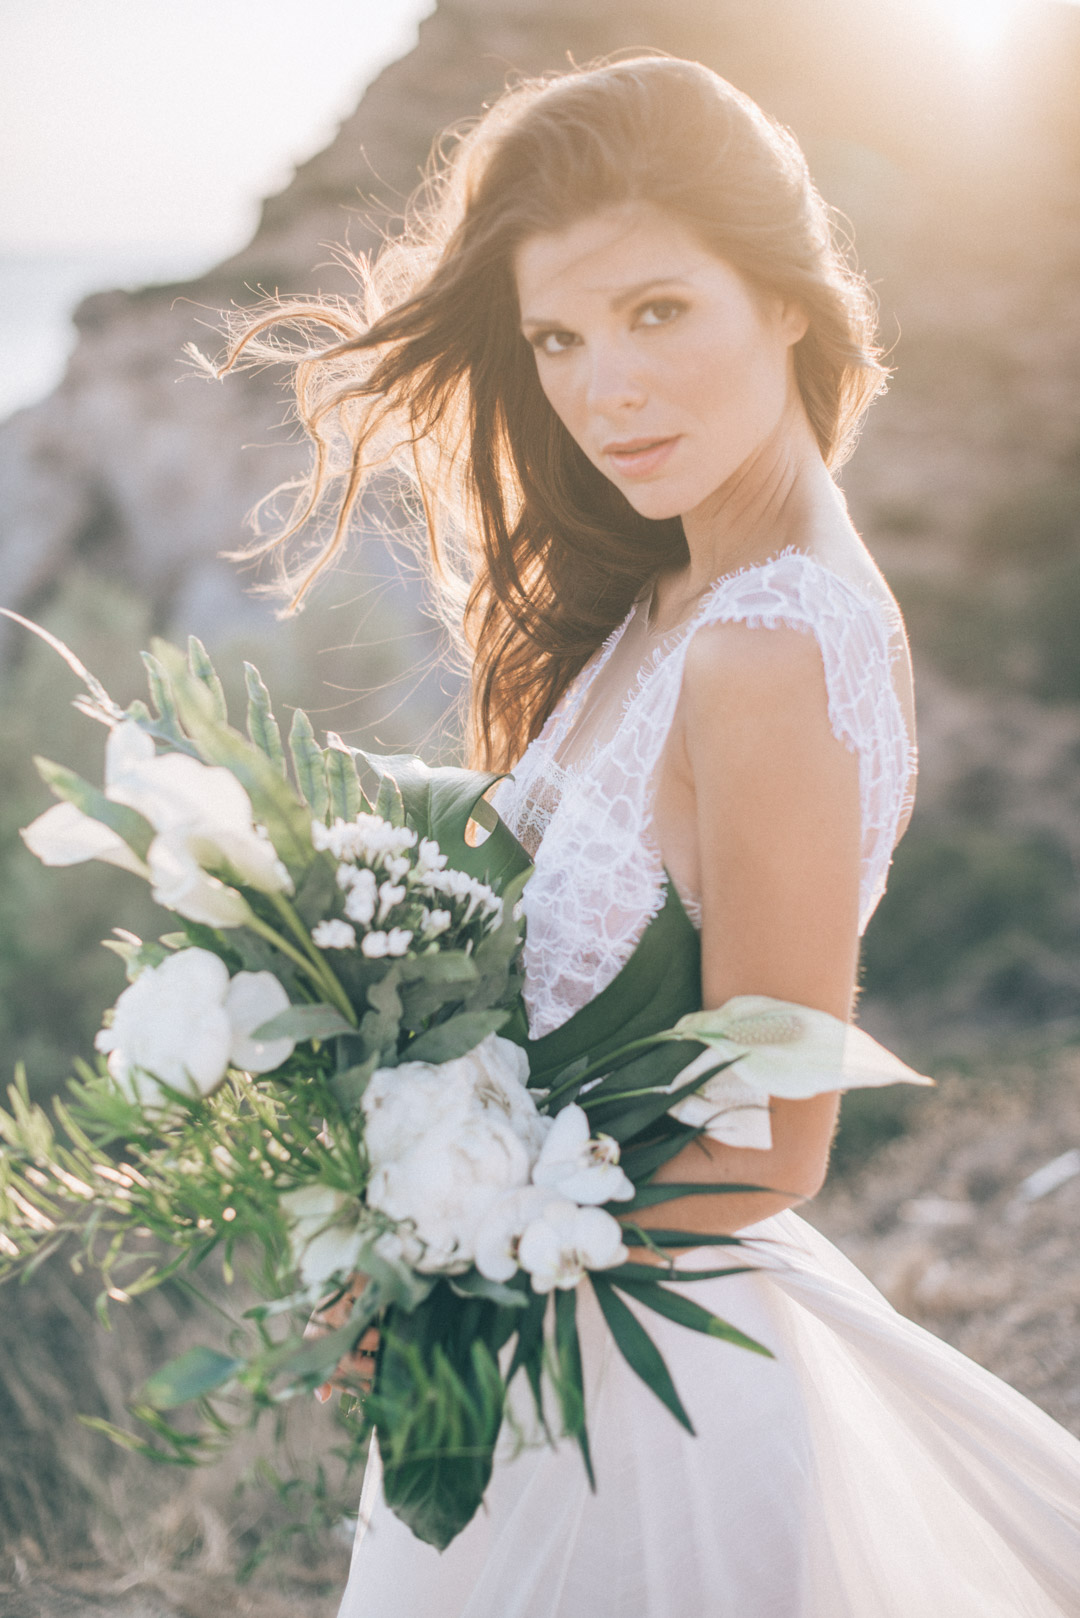 large-white-flower-bouquet-and-bohemian-lace-wedding-dress